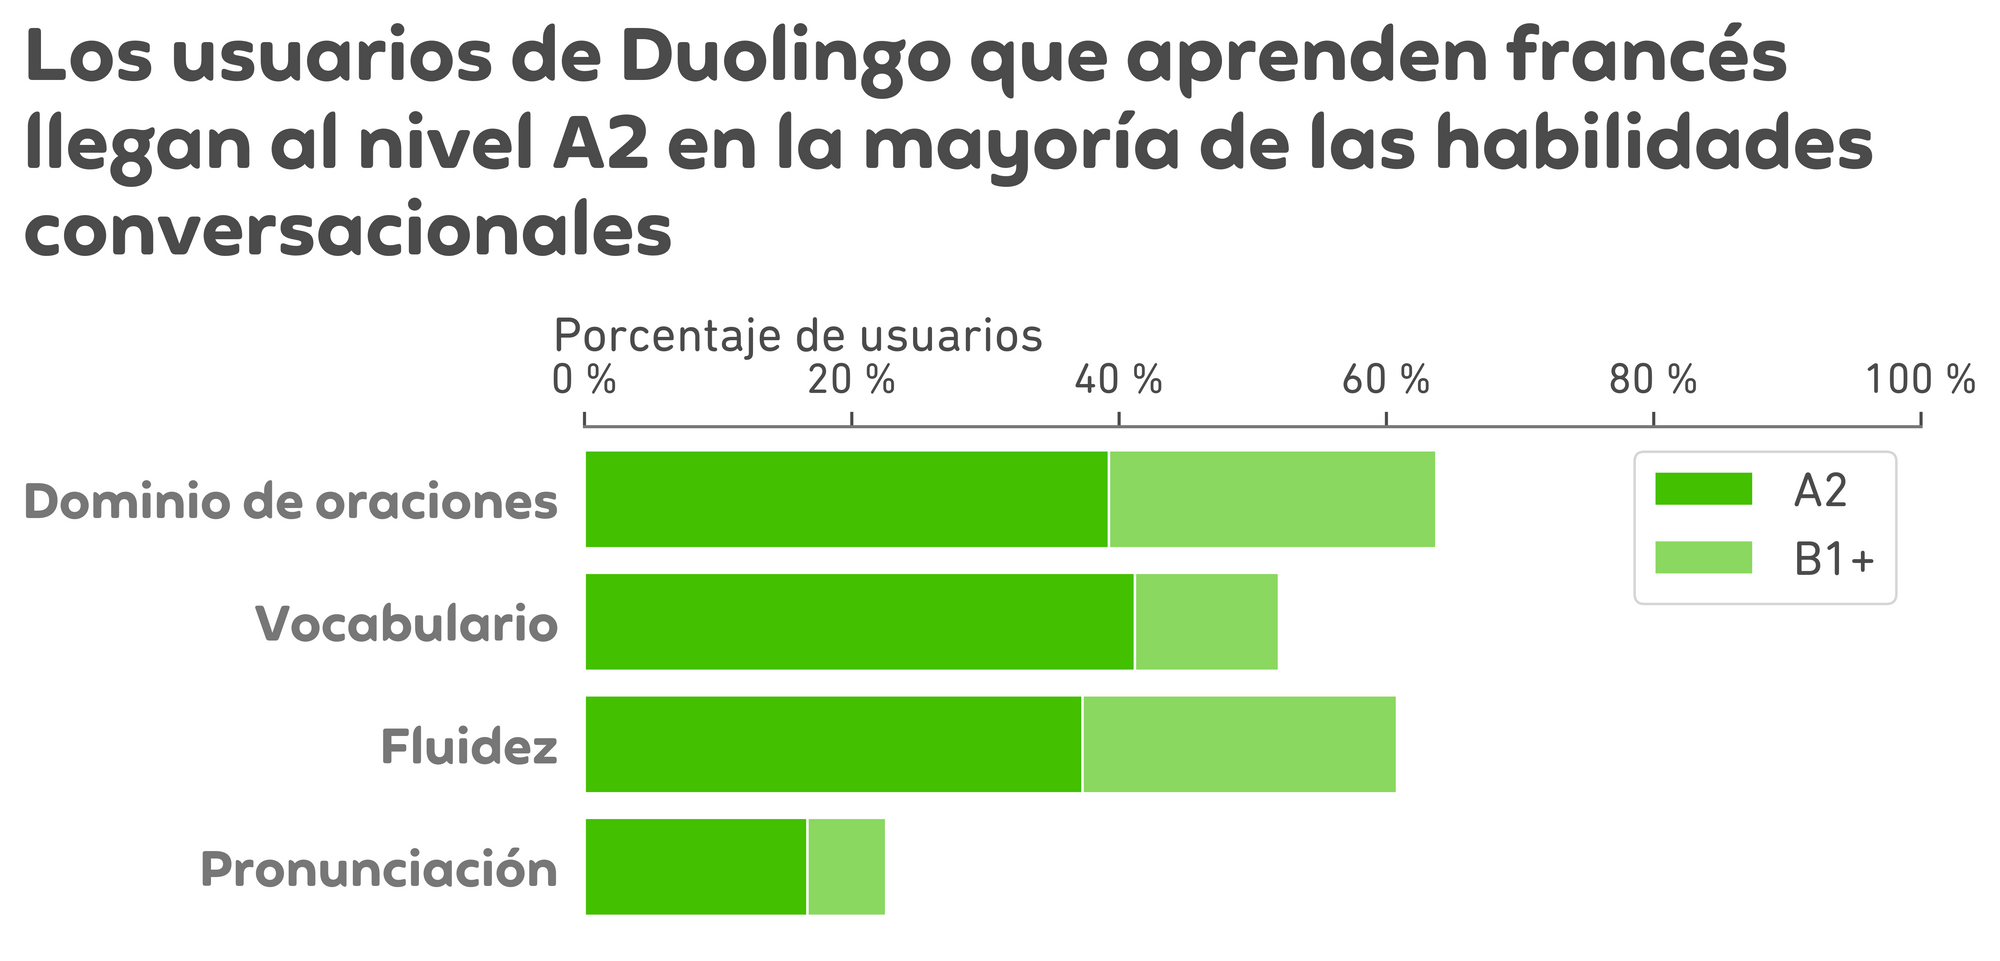 """Graph of results. The title is """"Duolingo French leaners achieve A2 for most speaking skills,"""" and below is a chart like the Spanish chart above. There are 4 horizontal bars, one for each speaking subscore, and the x-axis is percent of learners from 0 to 100. Each bar is divided into a dark green section on the left and a light green section on the right. For sentence mastery, the dark green bar extends to about 40% for A2 achievement and the light green continues to about 62% for B1 or higher. For vocabulary, the dark green bar extends to about 40% for A2 and the light green continues to about 52% for B1 or higher. For fluency, the dark green bar extends to about 38% for A2 and the light green continues to about 60% for B1 or higher. Finally, for pronunciation, the dark green extends to about 18% for A2 and the light green continues to about 22% for B1 or higher."""